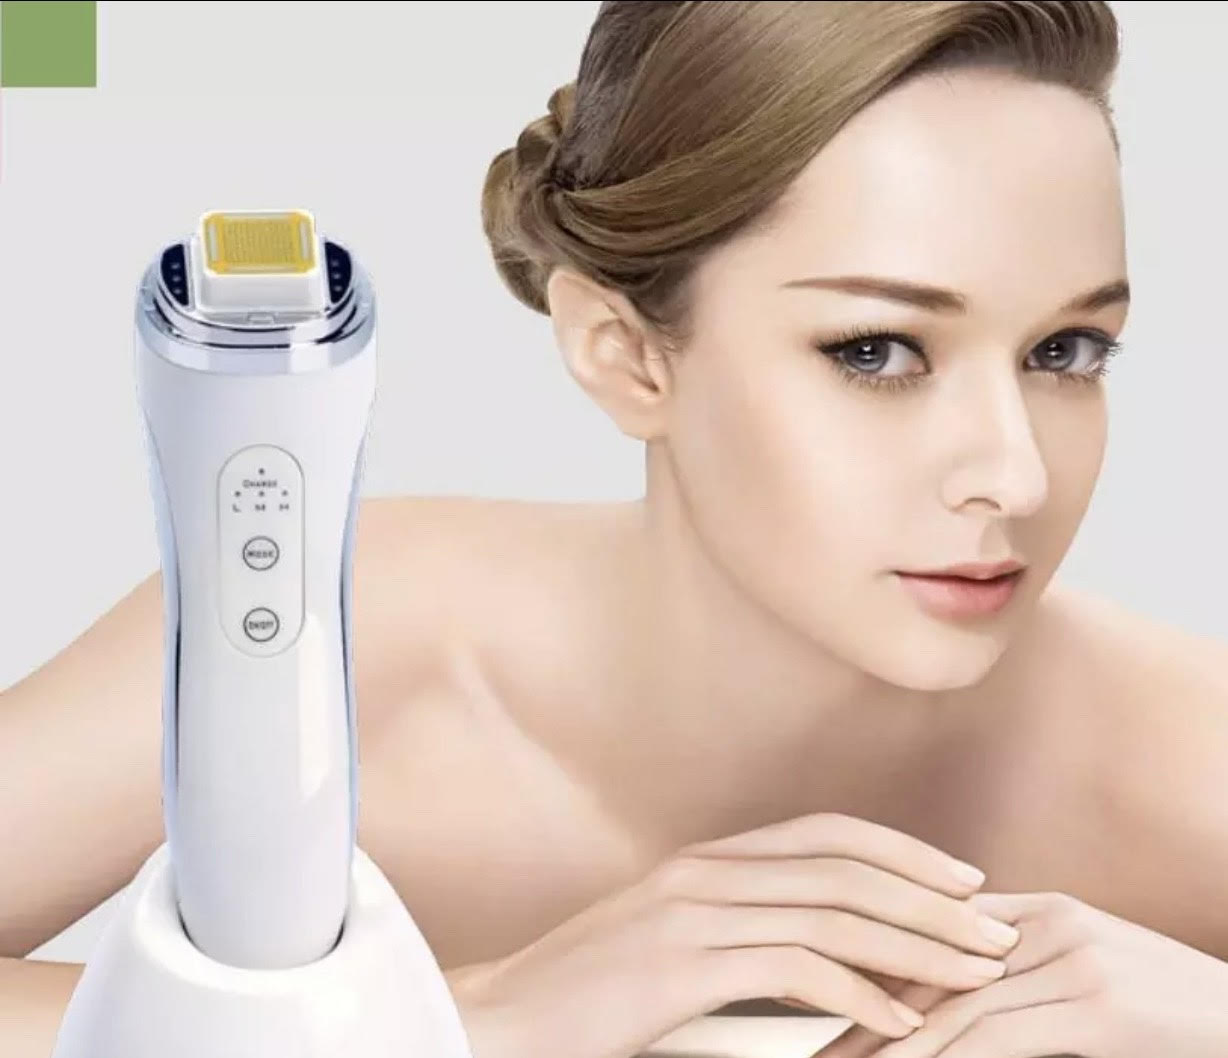 RF Radio Frequency Lattice Matrix Skin Tightening Device. #1 Selling RF Device (AU Stock)